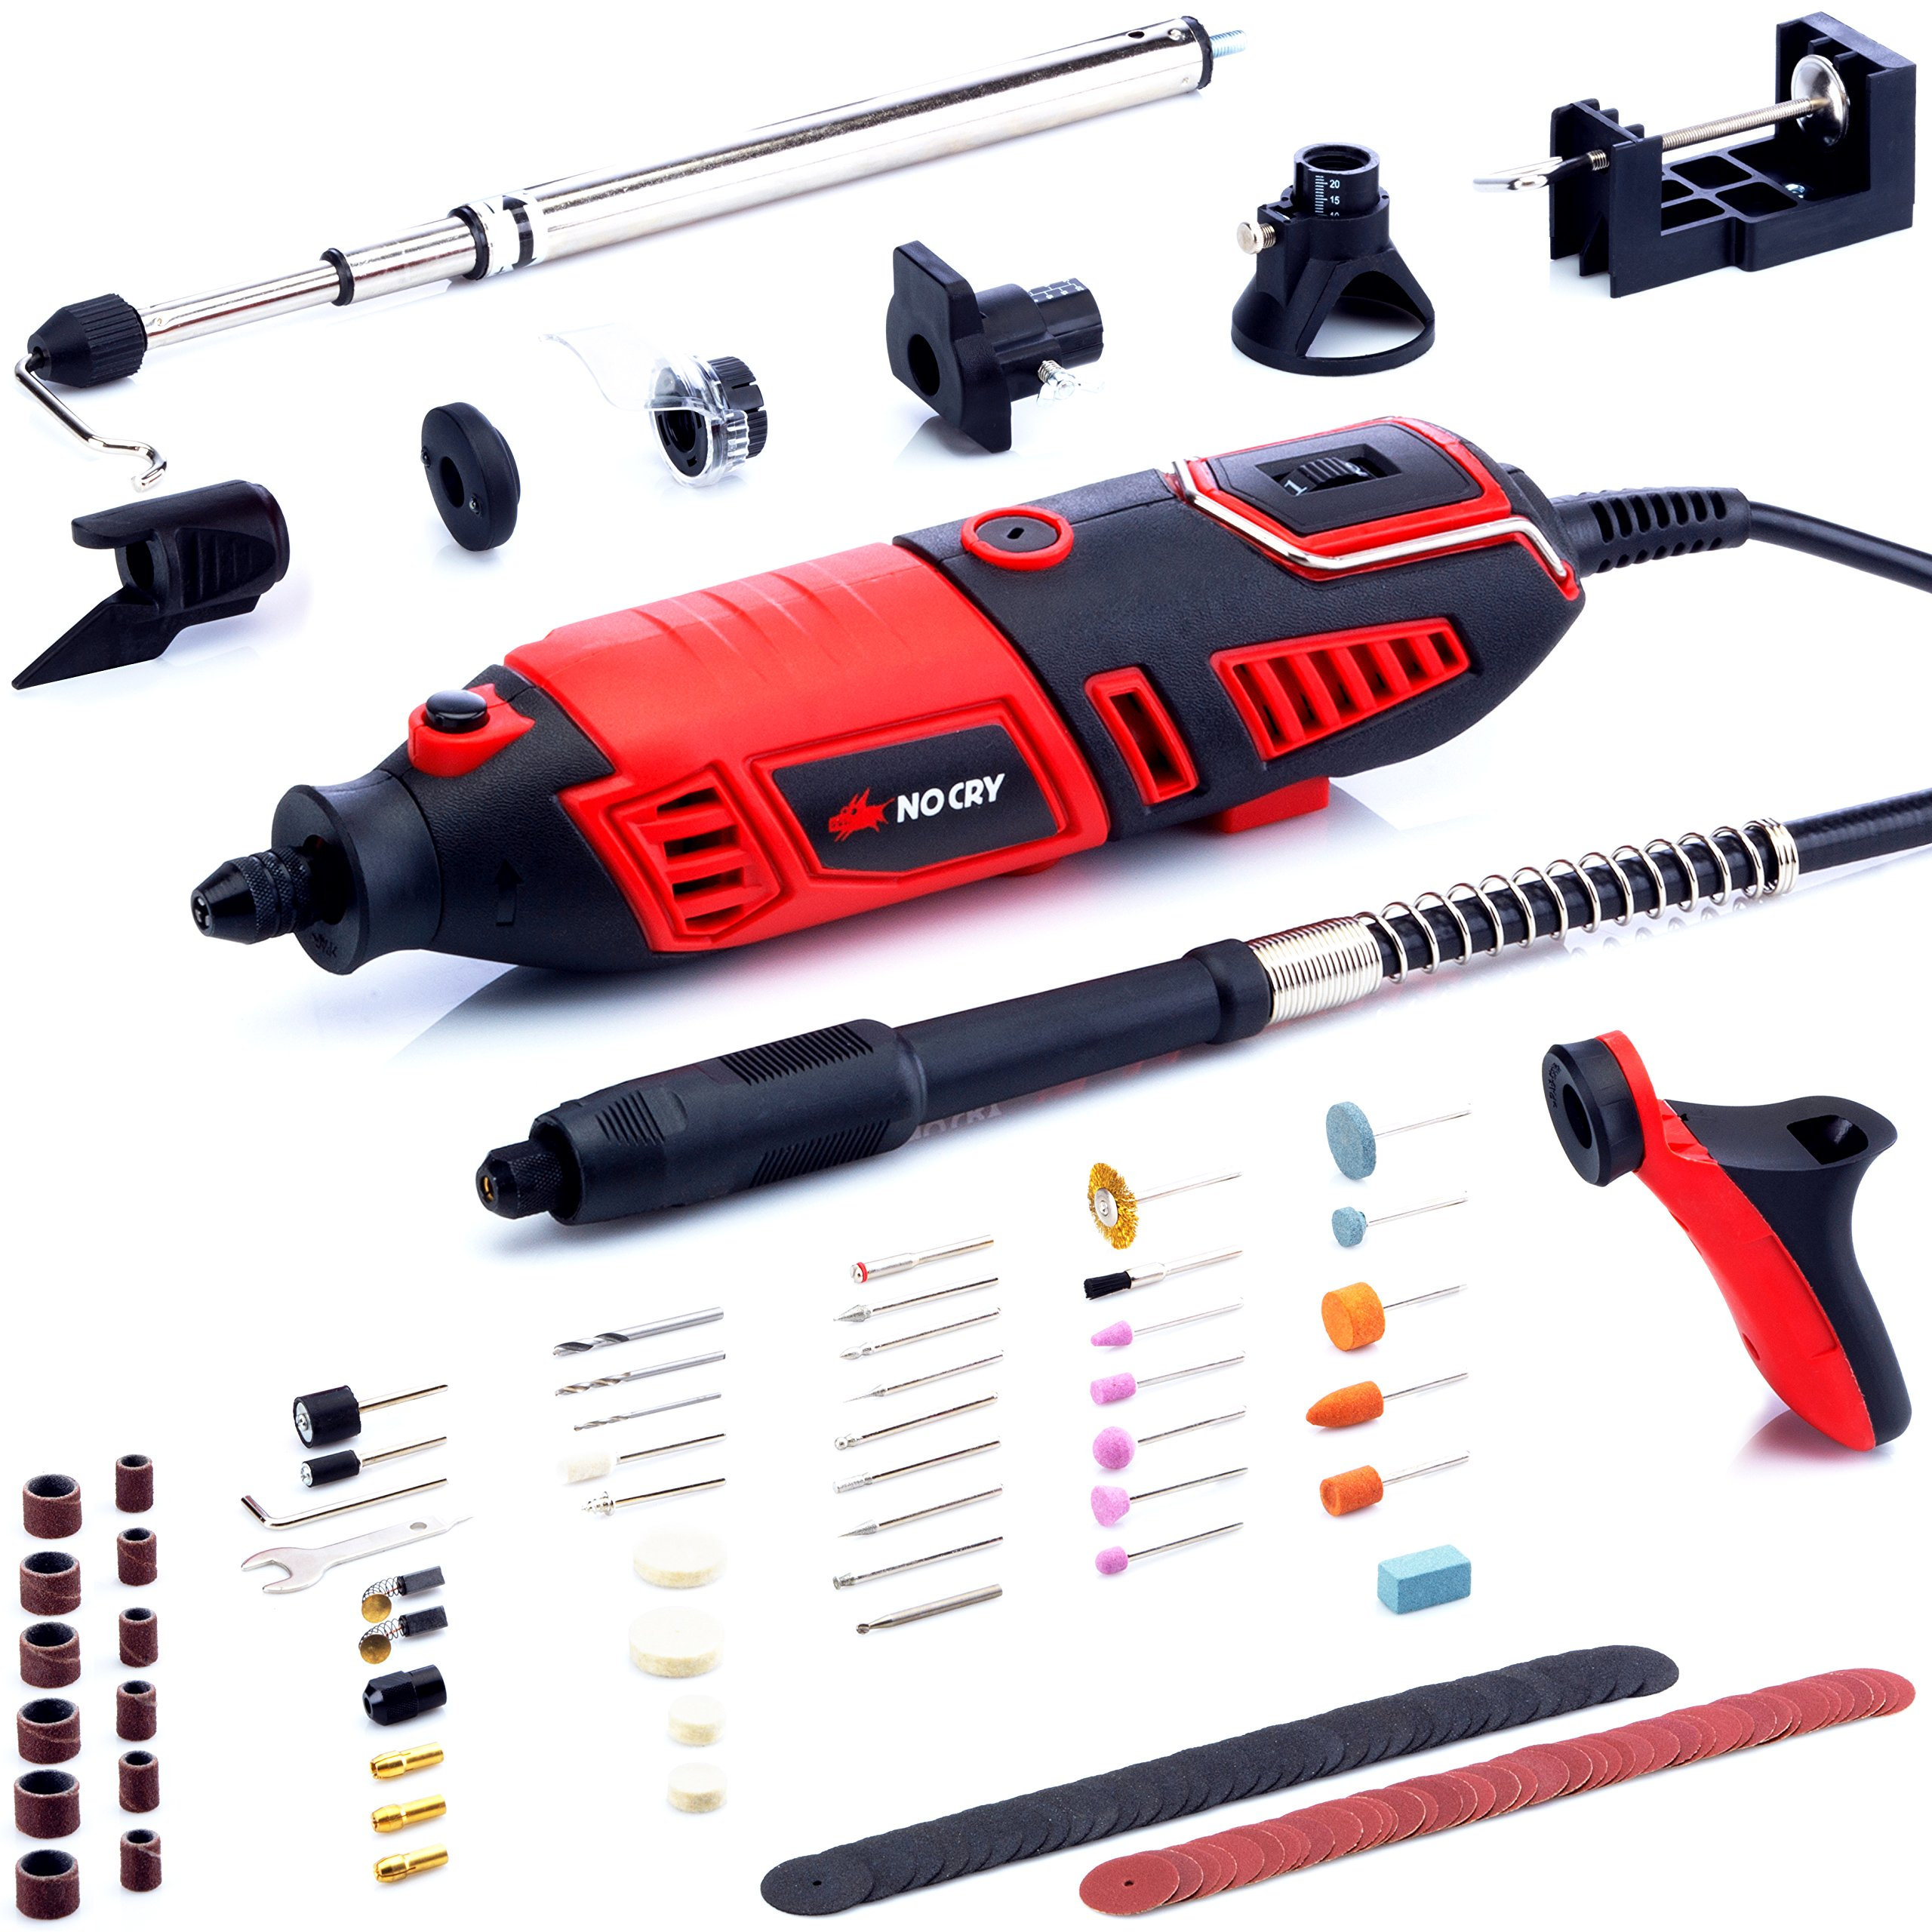 NoCry Professional Rotary Tool Kit - Heavy Duty 170W/1.4A Electric Motor, 8,000-35,000 rpm, 10 Attachments & 125 Accessories Included by NoCry (Image #1)